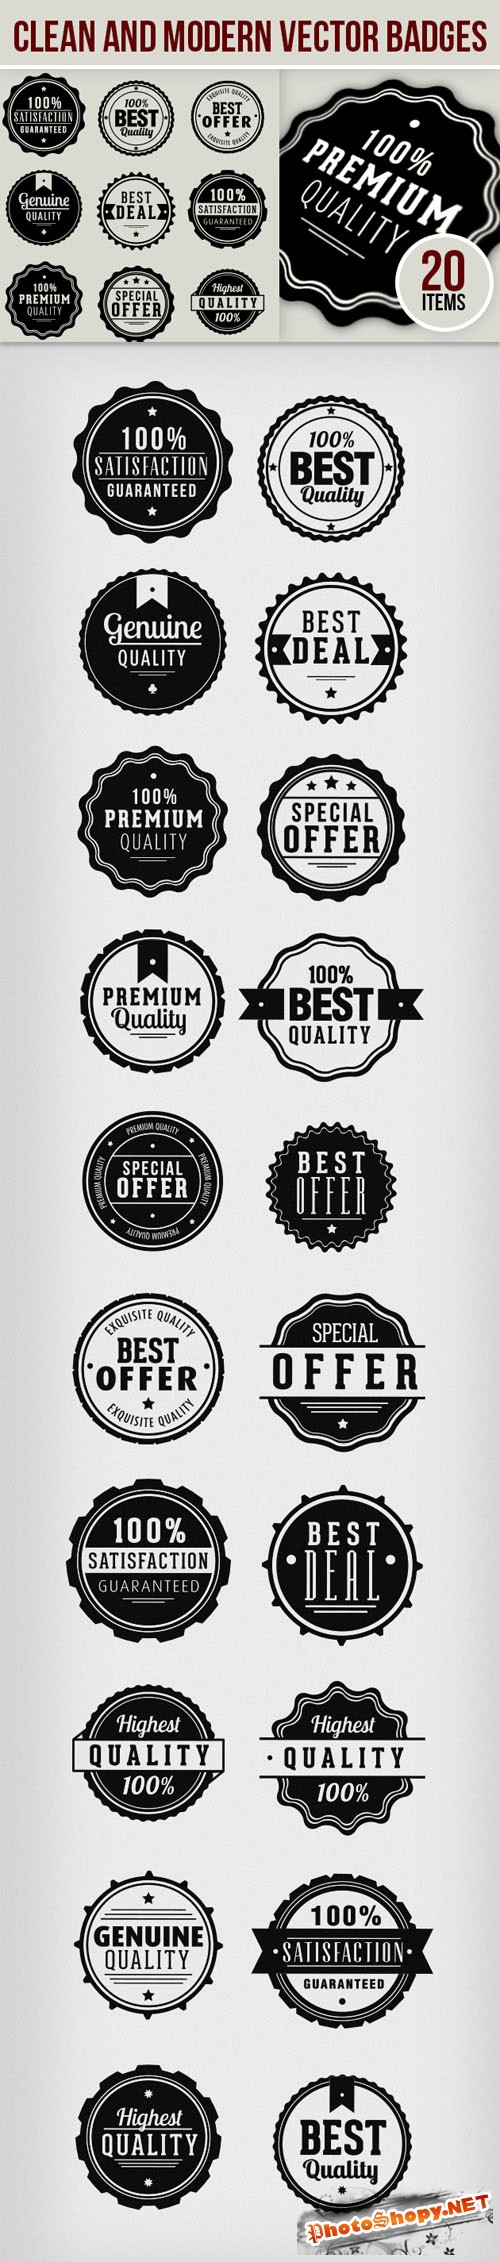 Designtnt - Clean and Modern Vector Badges